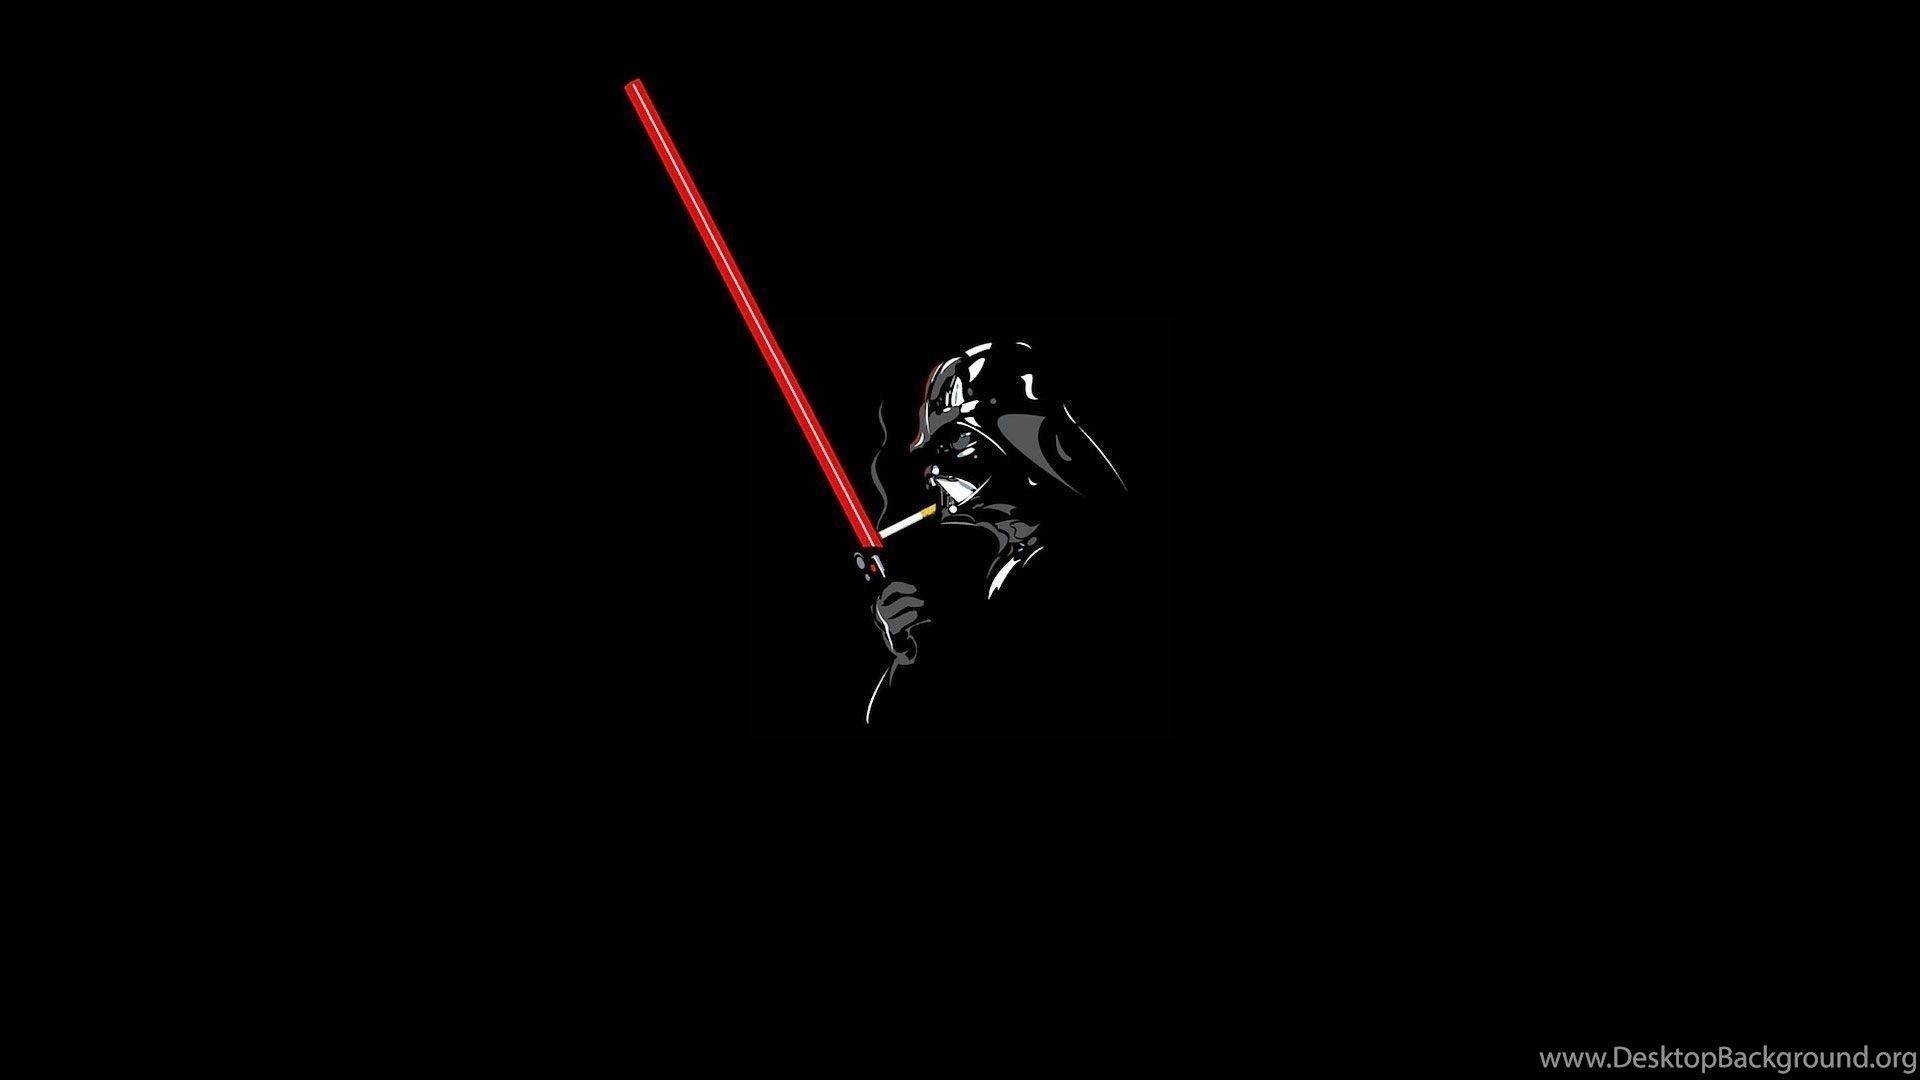 Hd Quality Star Wars Darth Vader Wallpapers 19 Movies Siwallpapers